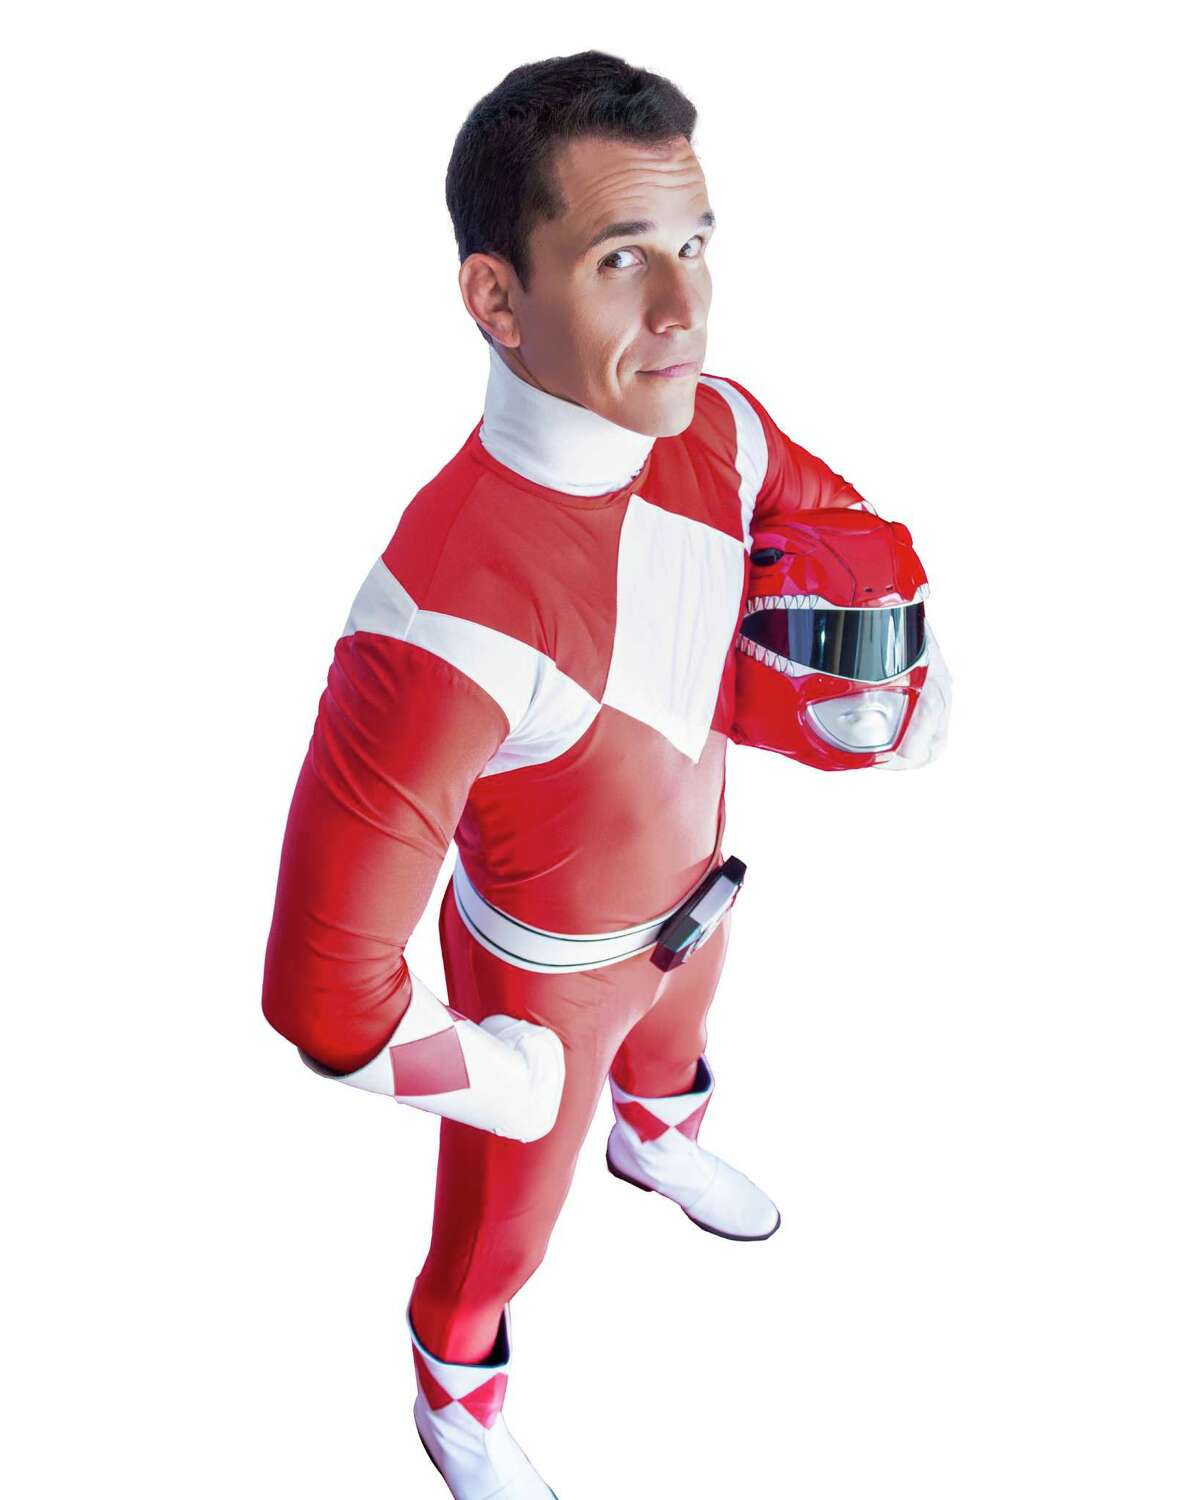 Steve Cardenas of San Antonio had loads of fun in his signature red suit as 'Power Ranger' Rocky DeSantos and welcomes the new movie with Bryan Cranston.